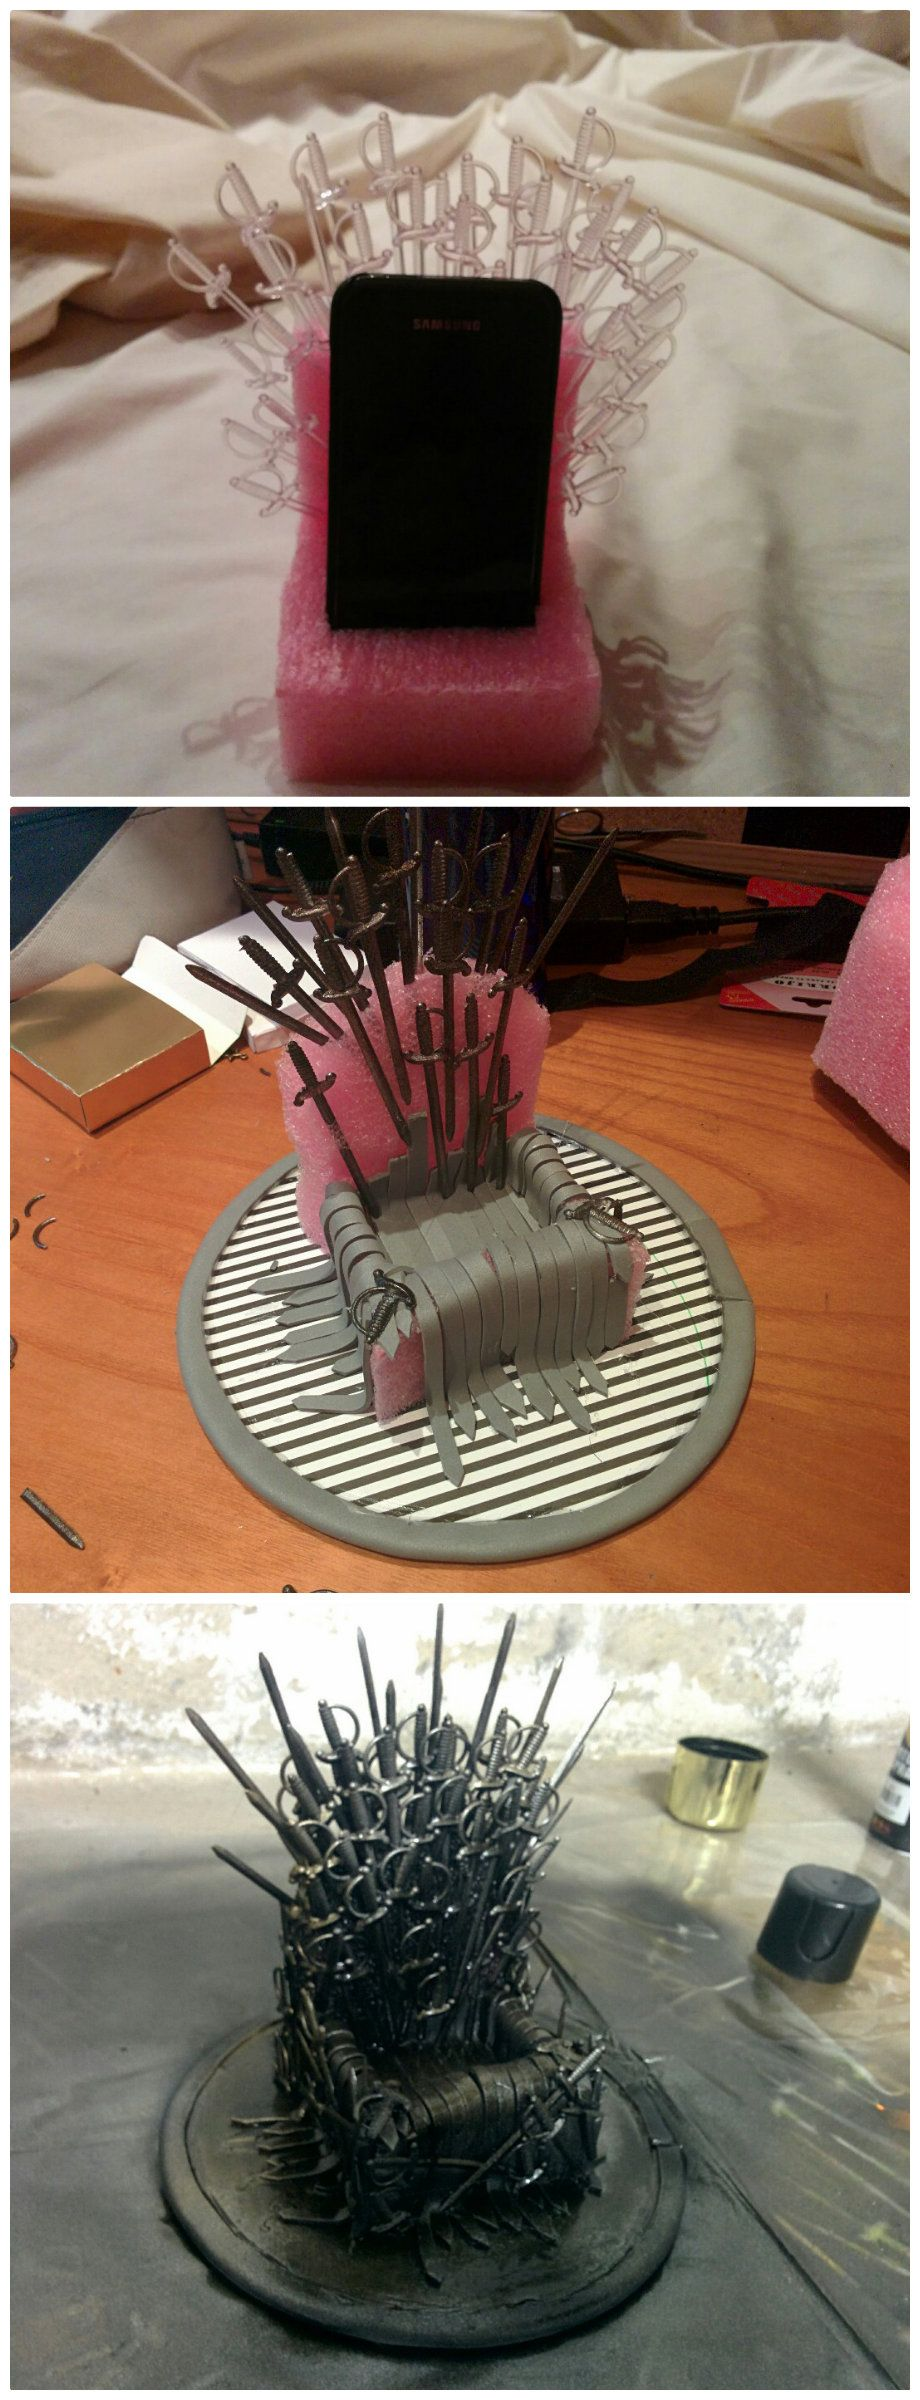 20 Diy Game Of Thrones Projects To Get Fans Through